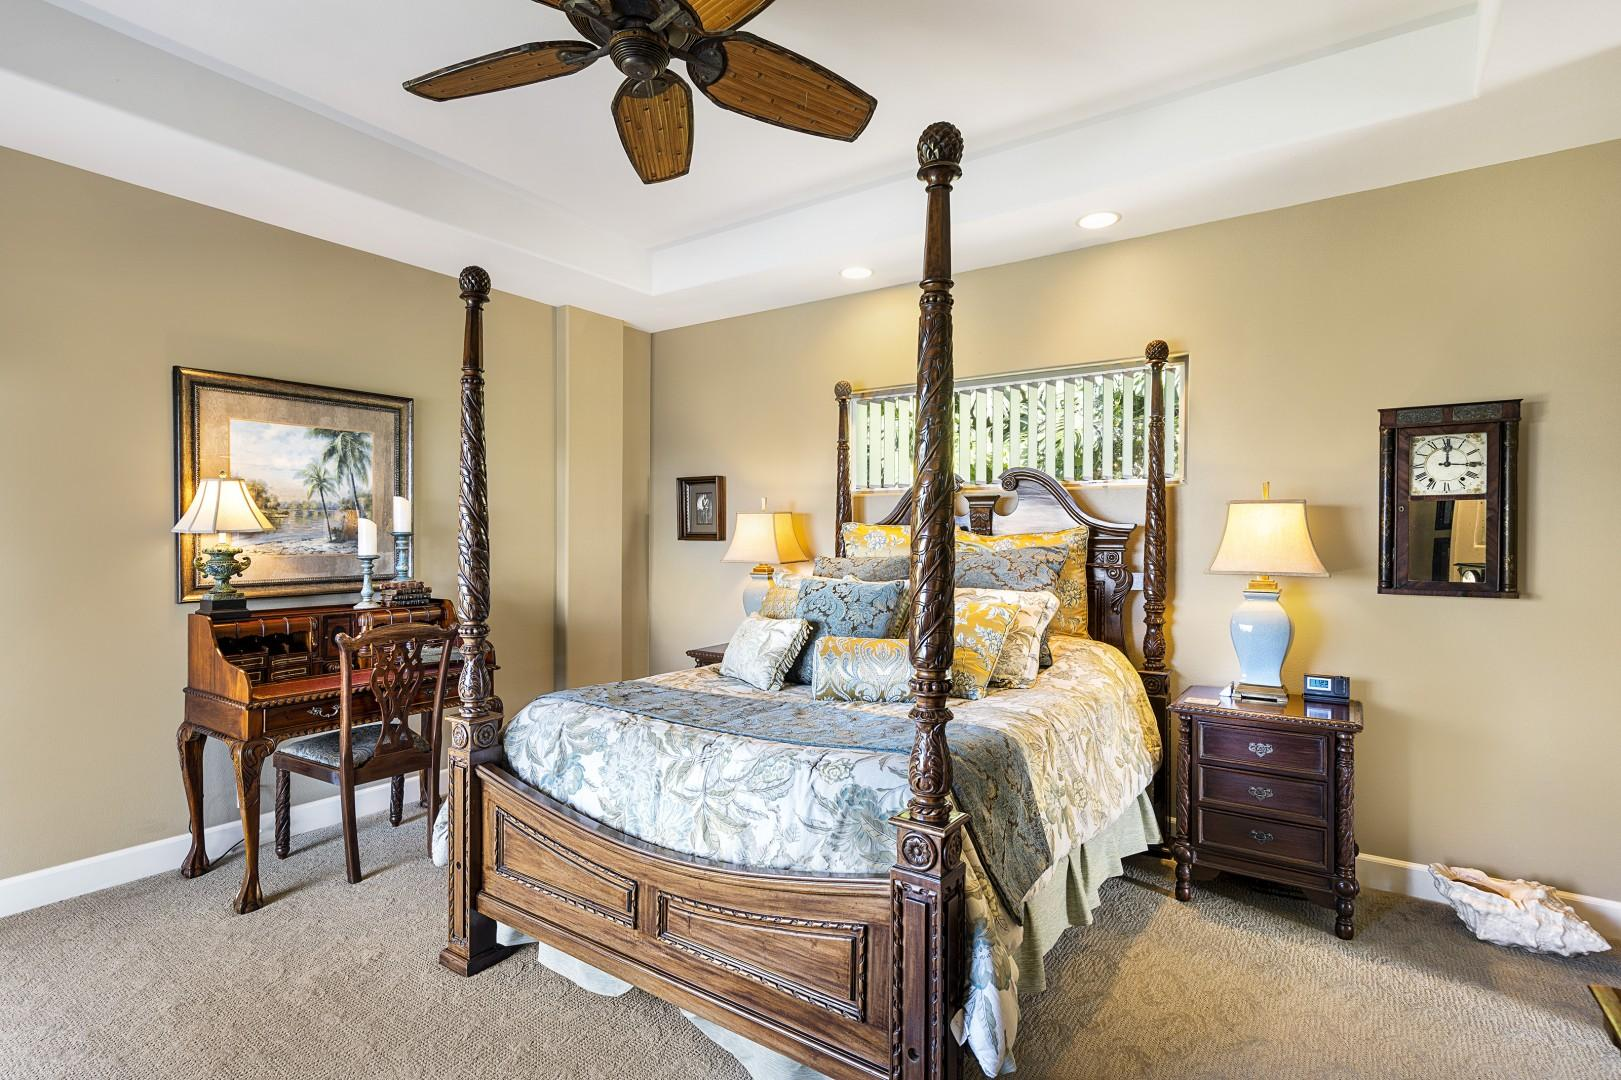 Queen sized bed with Lanai access and Ocean views!